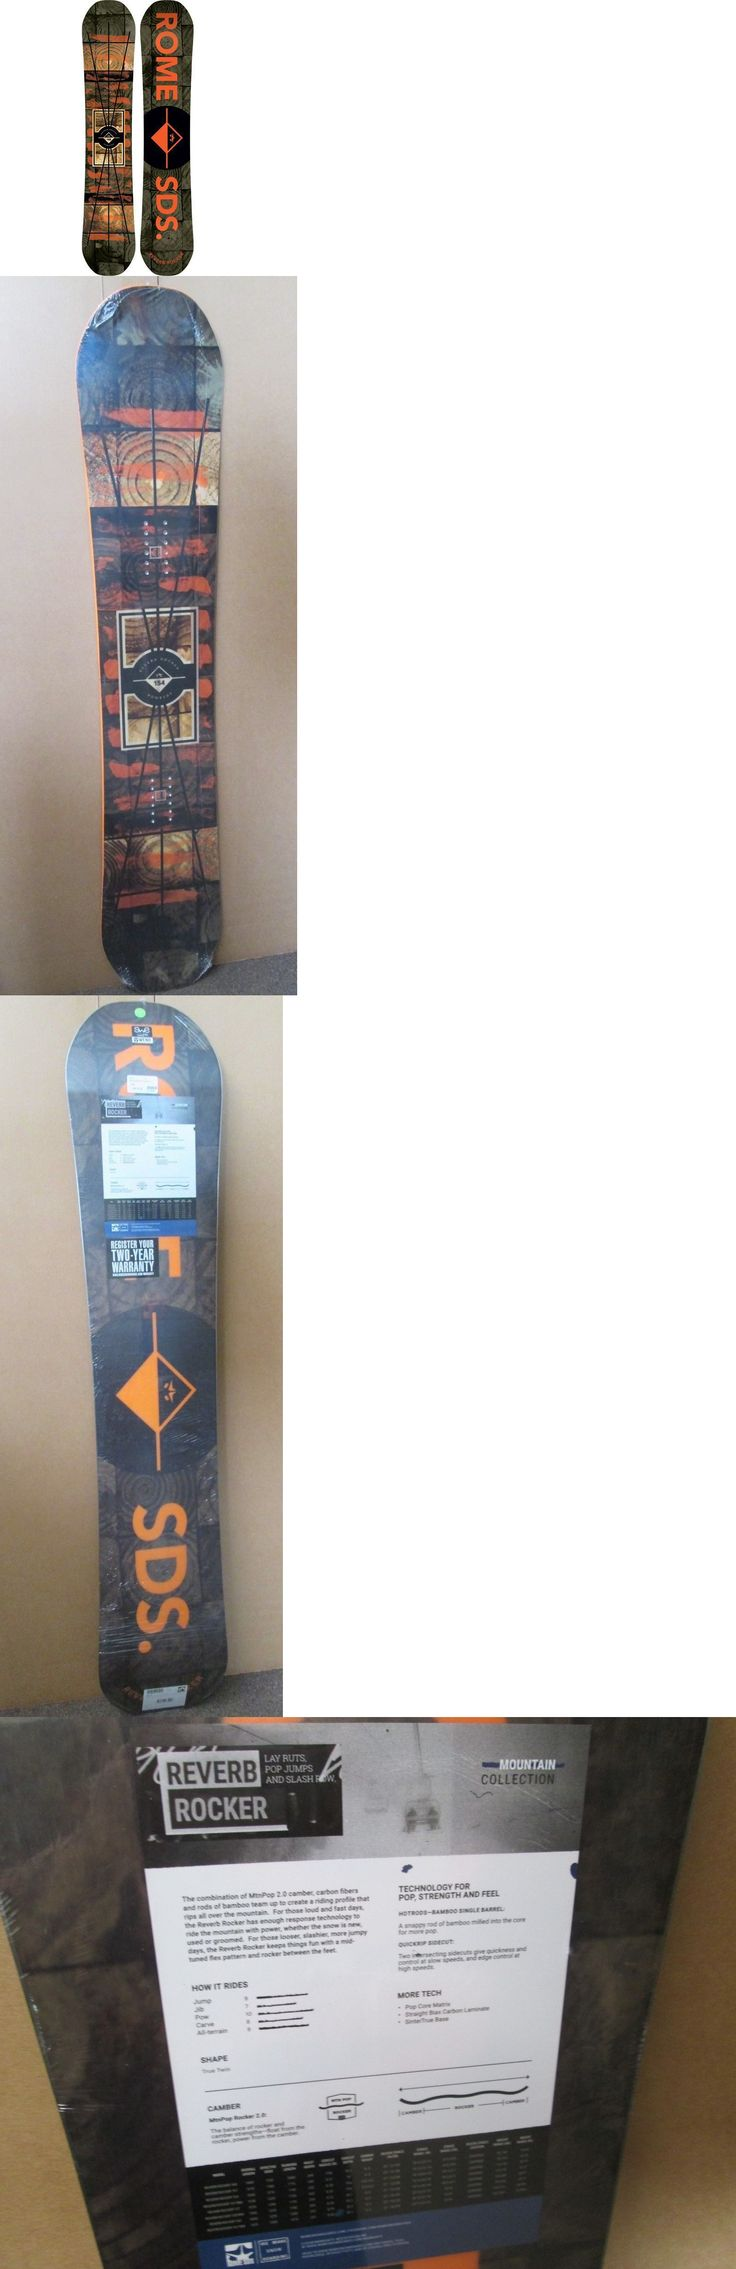 Snowboards 93825: Rome Reverb Rocker 155 Cm Mid-Wide Snowboard New With Tags! -> BUY IT NOW ONLY: $249 on eBay!